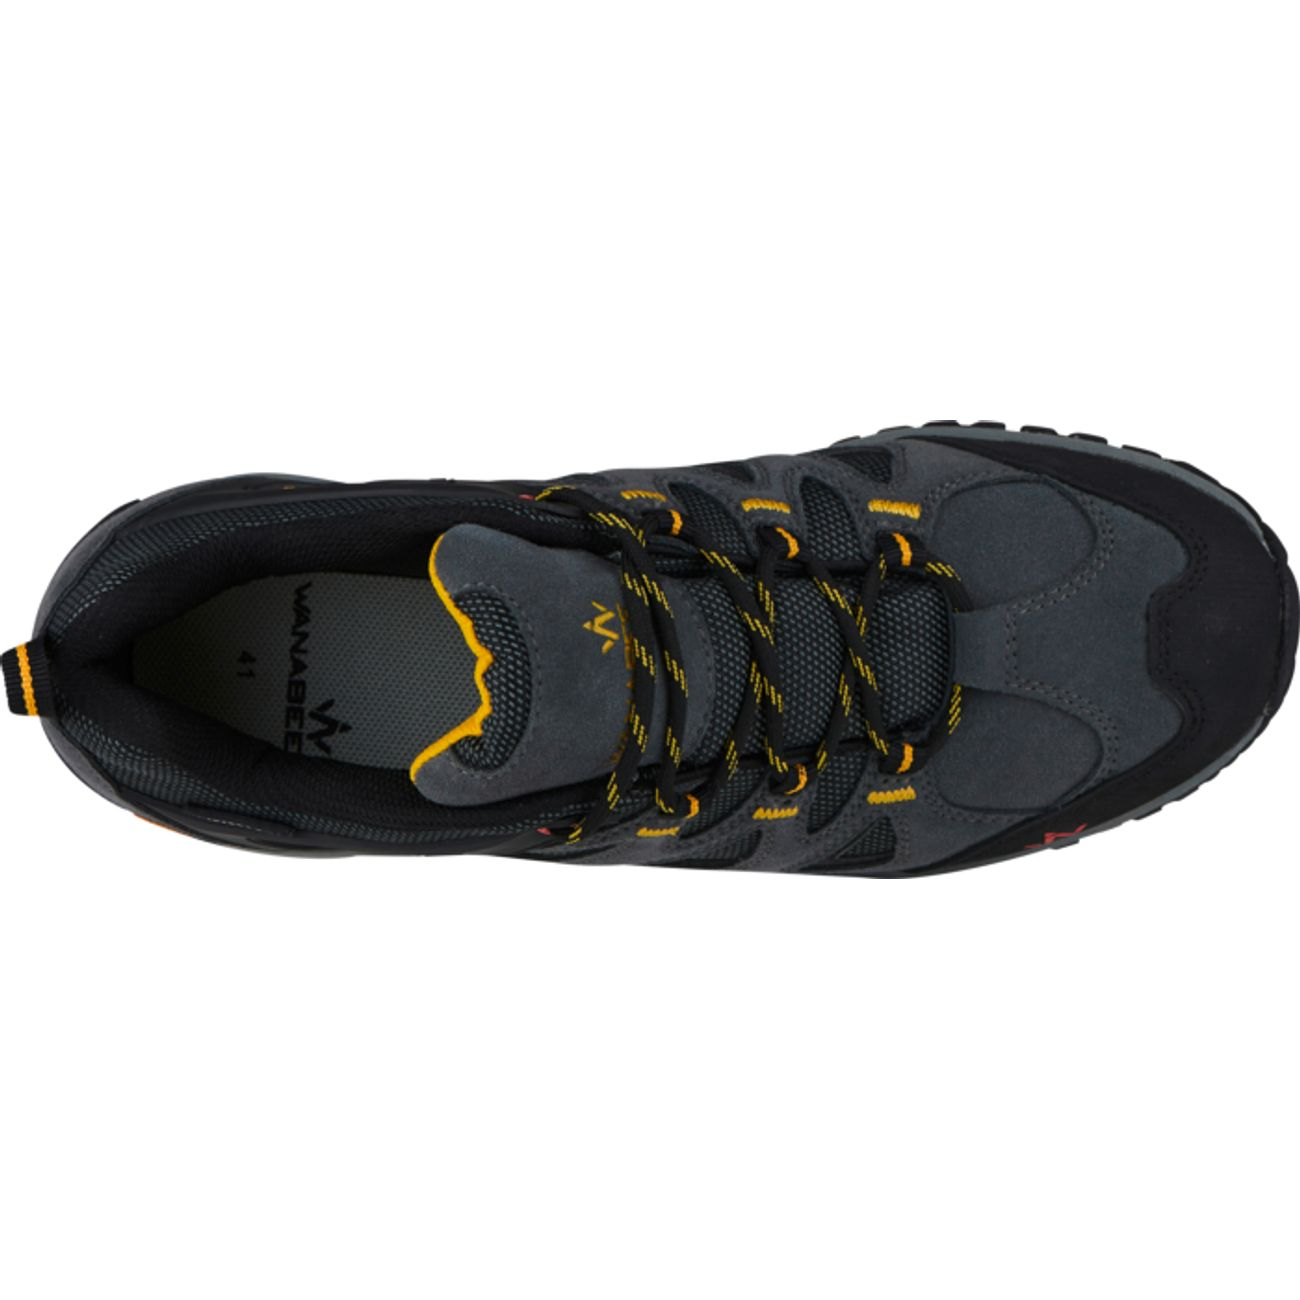 CHAUSSURES BASSES Randonnée homme WANABEE HIKE 400 2 LOW WP